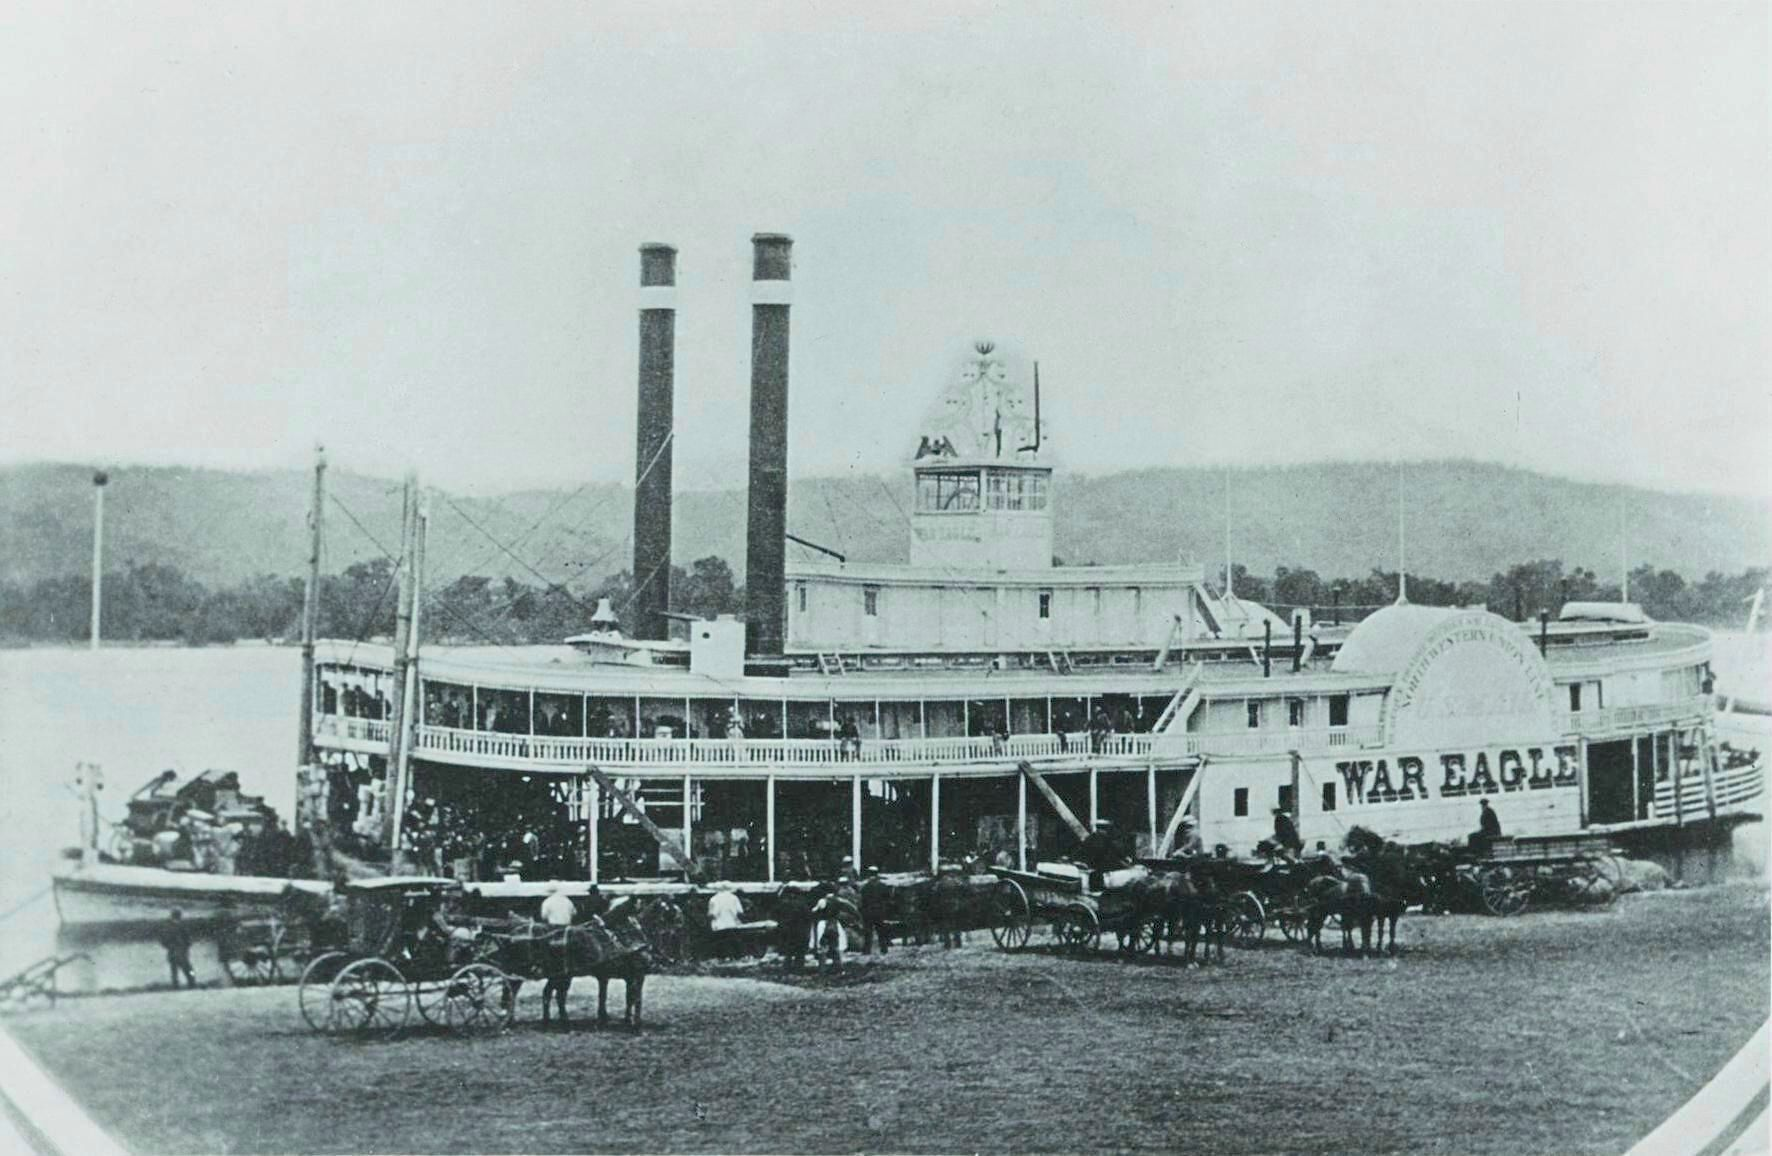 1800s steamboat | 1800 steamboats - group picture, image by tag - keywordpictures.com